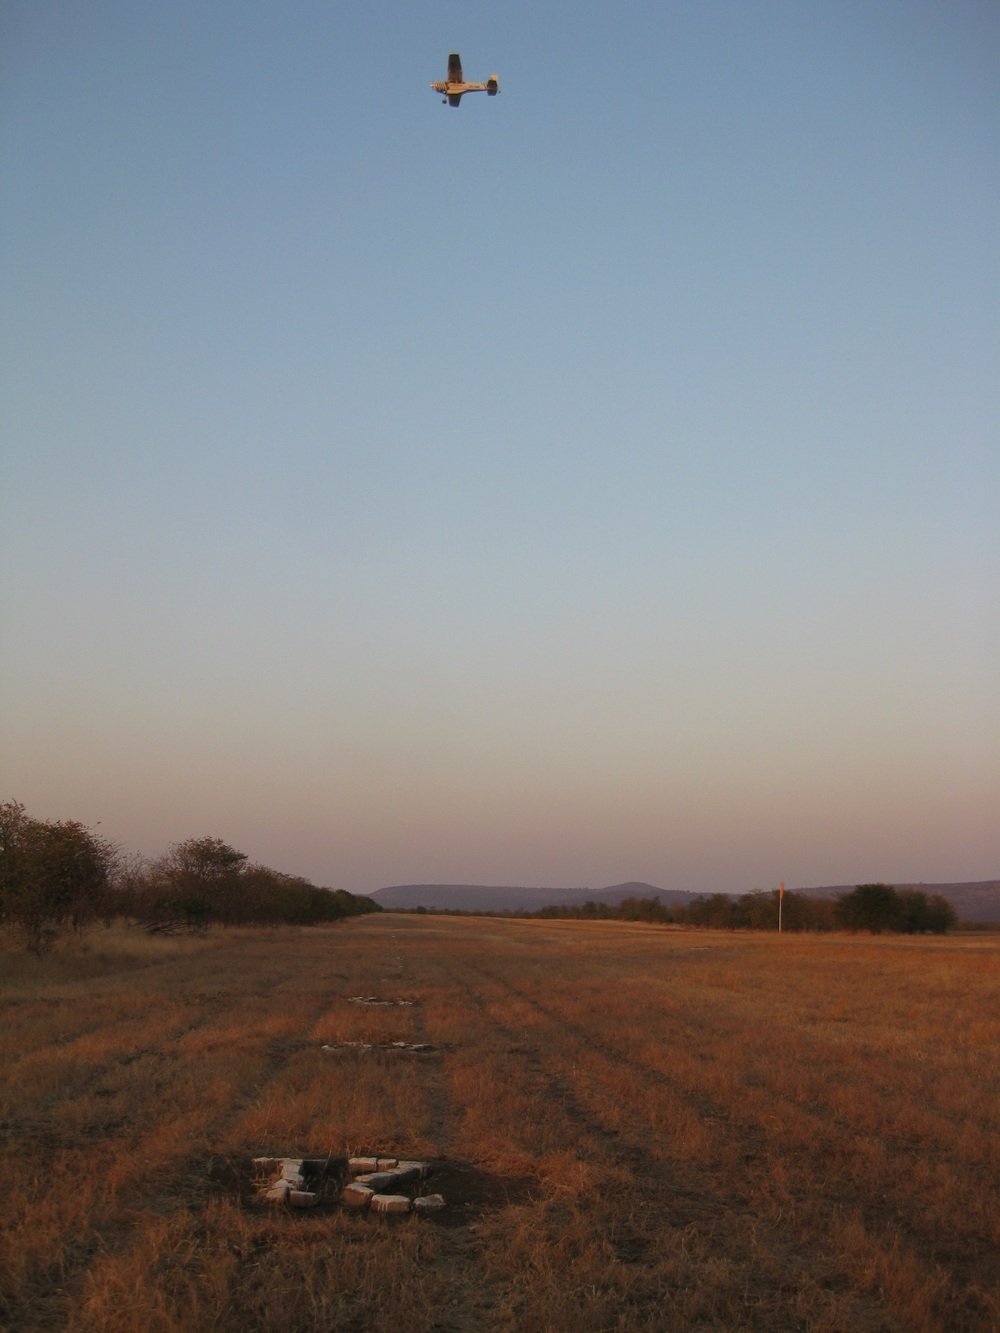 A calibration run at 300 feet above ground level across the airstrip by the survey aircraft. Repeated runs are made to complete the calibration.  Chipinda Pools, August 2014 .